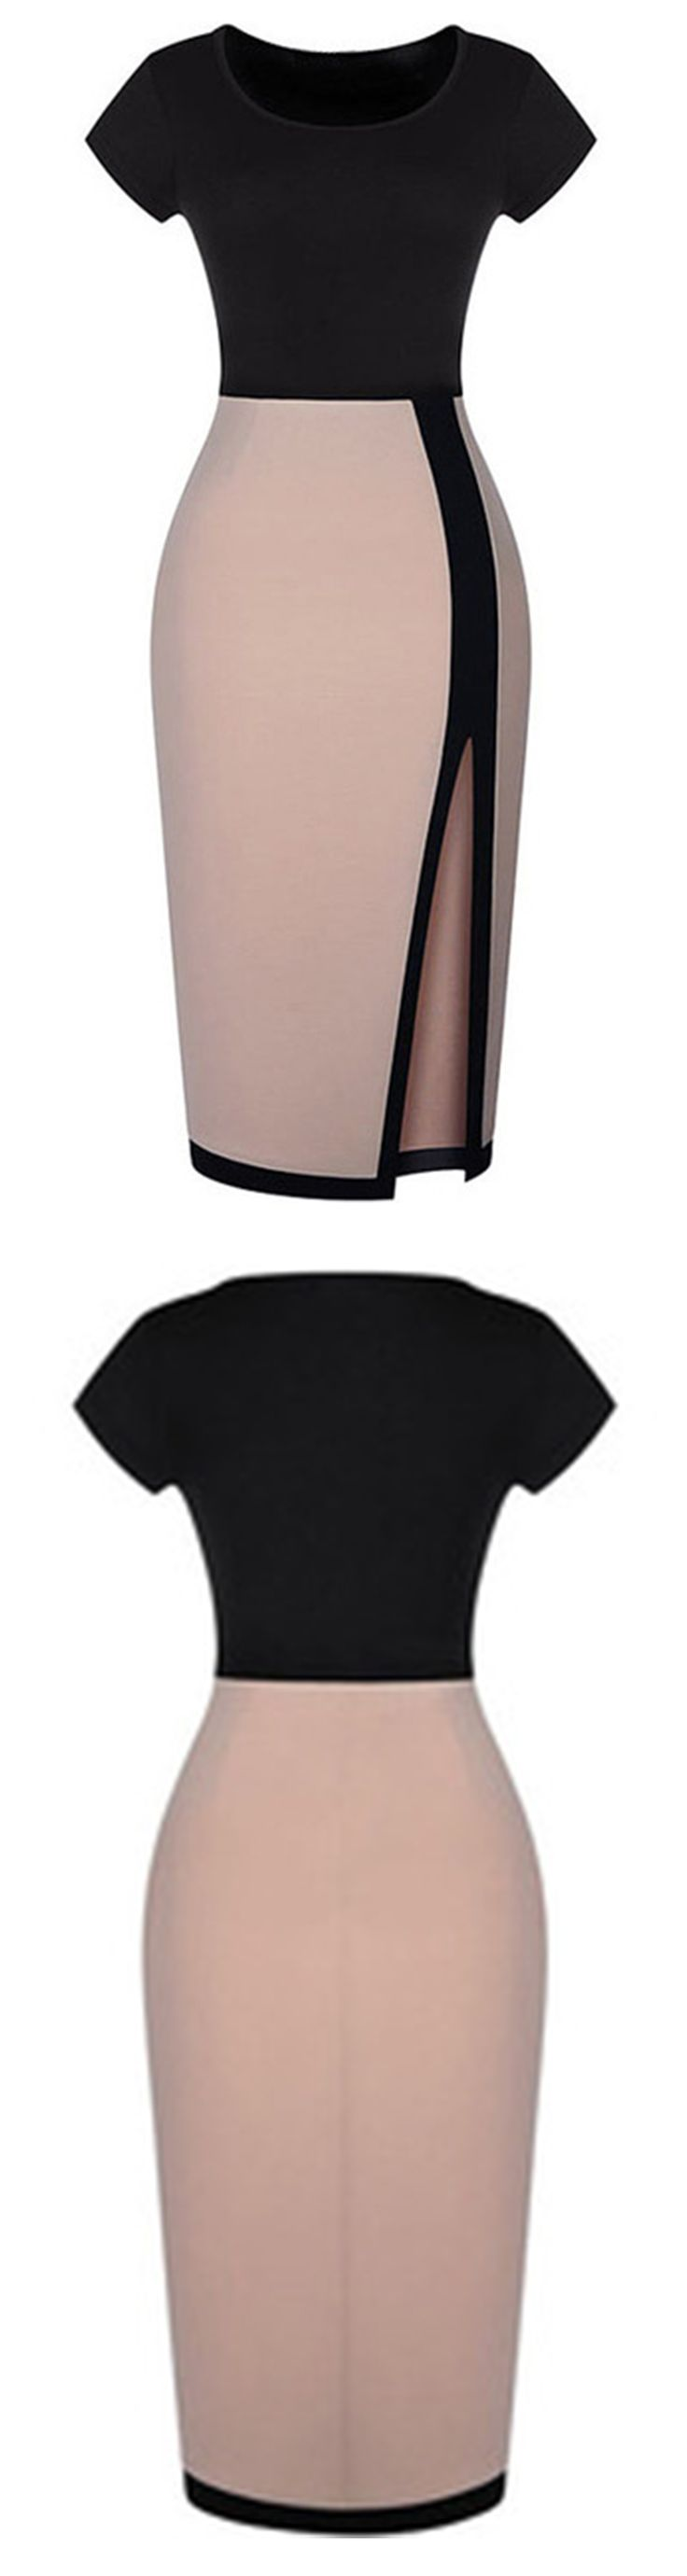 This bodycon dress can be a evening dress ,party dress  & even a work dress .♥♥♥♥♥We love the color block for the top and down for a chic look . All it needs to complete the look are your trusty killer heels and a tone of statement bracelets.